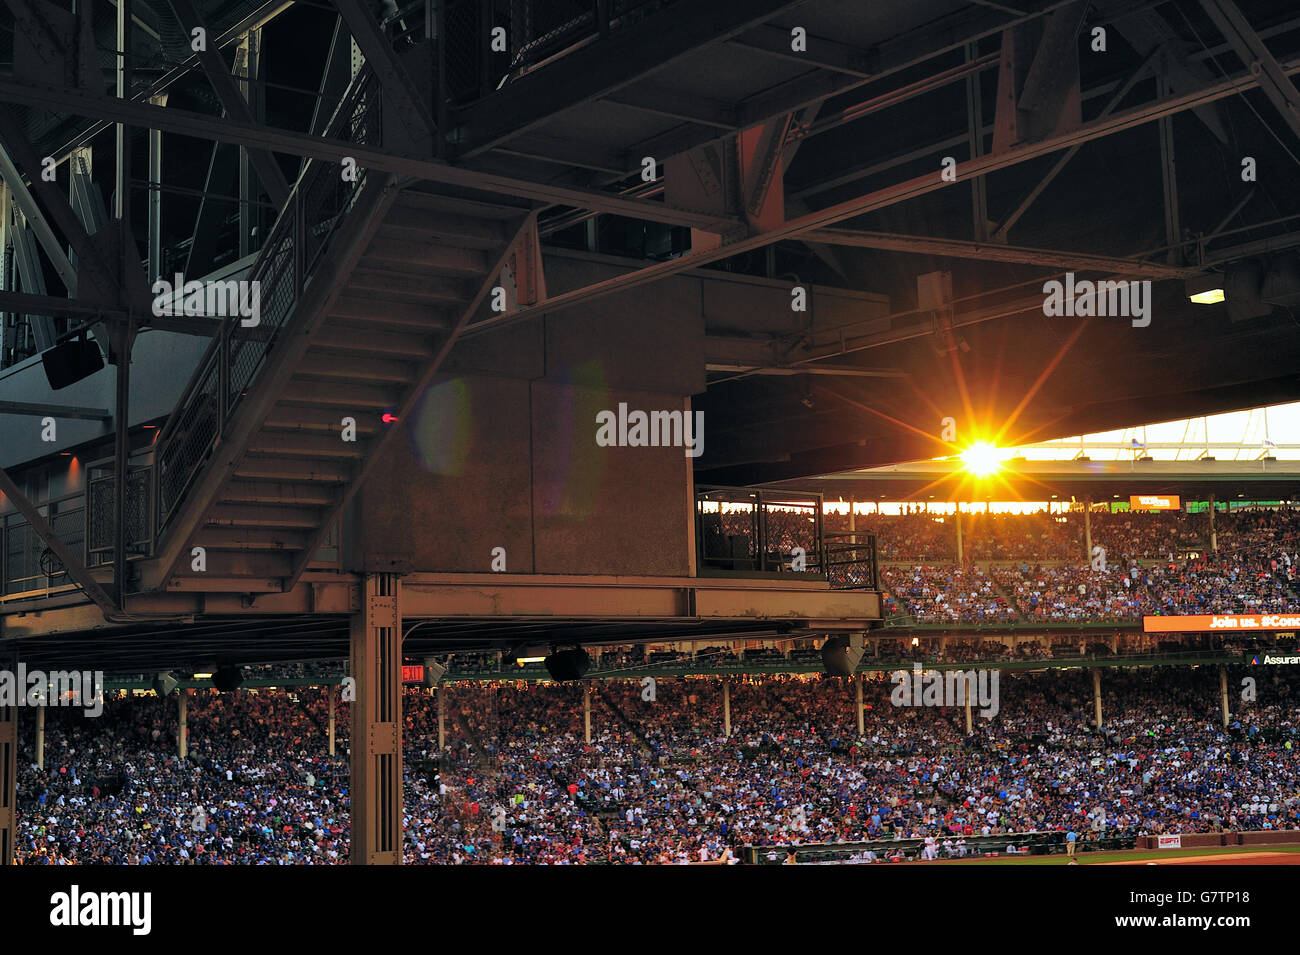 Game day at Wrigley Field, home to the Chicago Cubs as the setting sun creates a burst between the levels of the - Stock Image